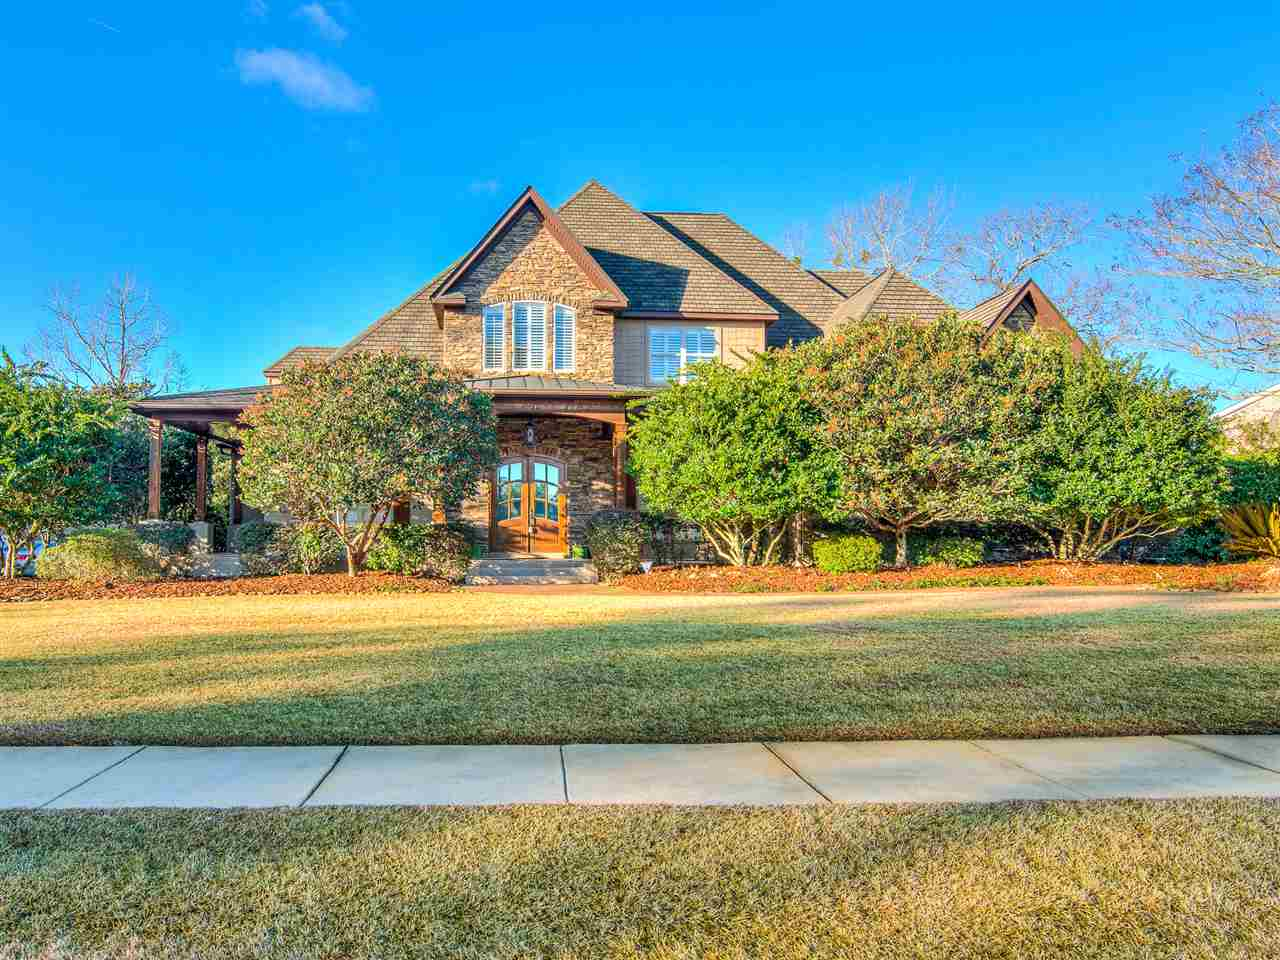 33178 Boardwalk Drive, Spanish Fort, AL 36527